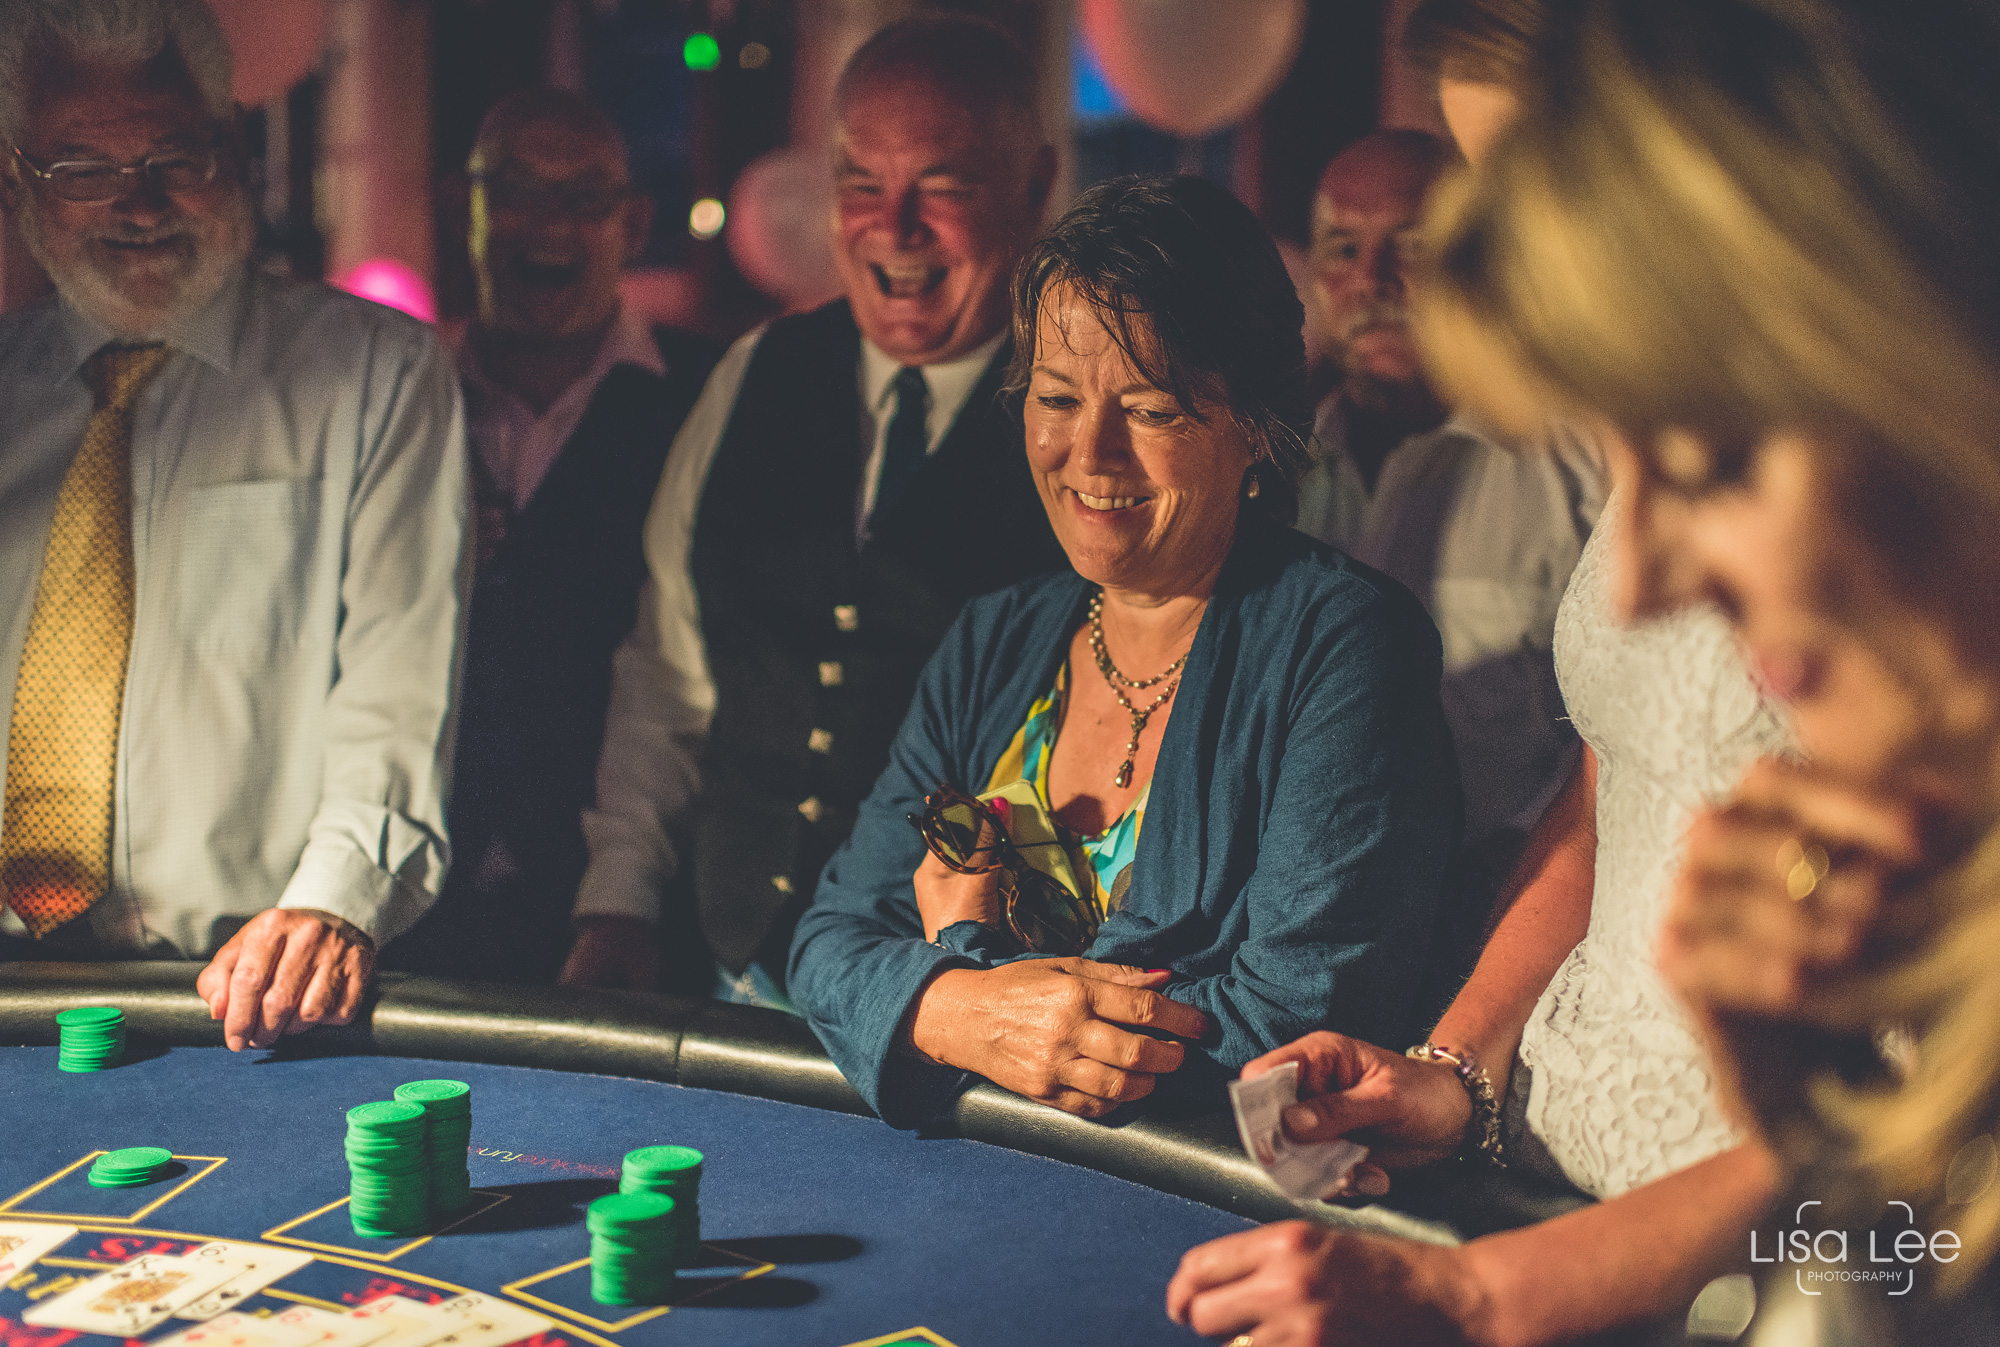 lisa-lee-wedding-photography-casino-talbot-heath-8.jpg